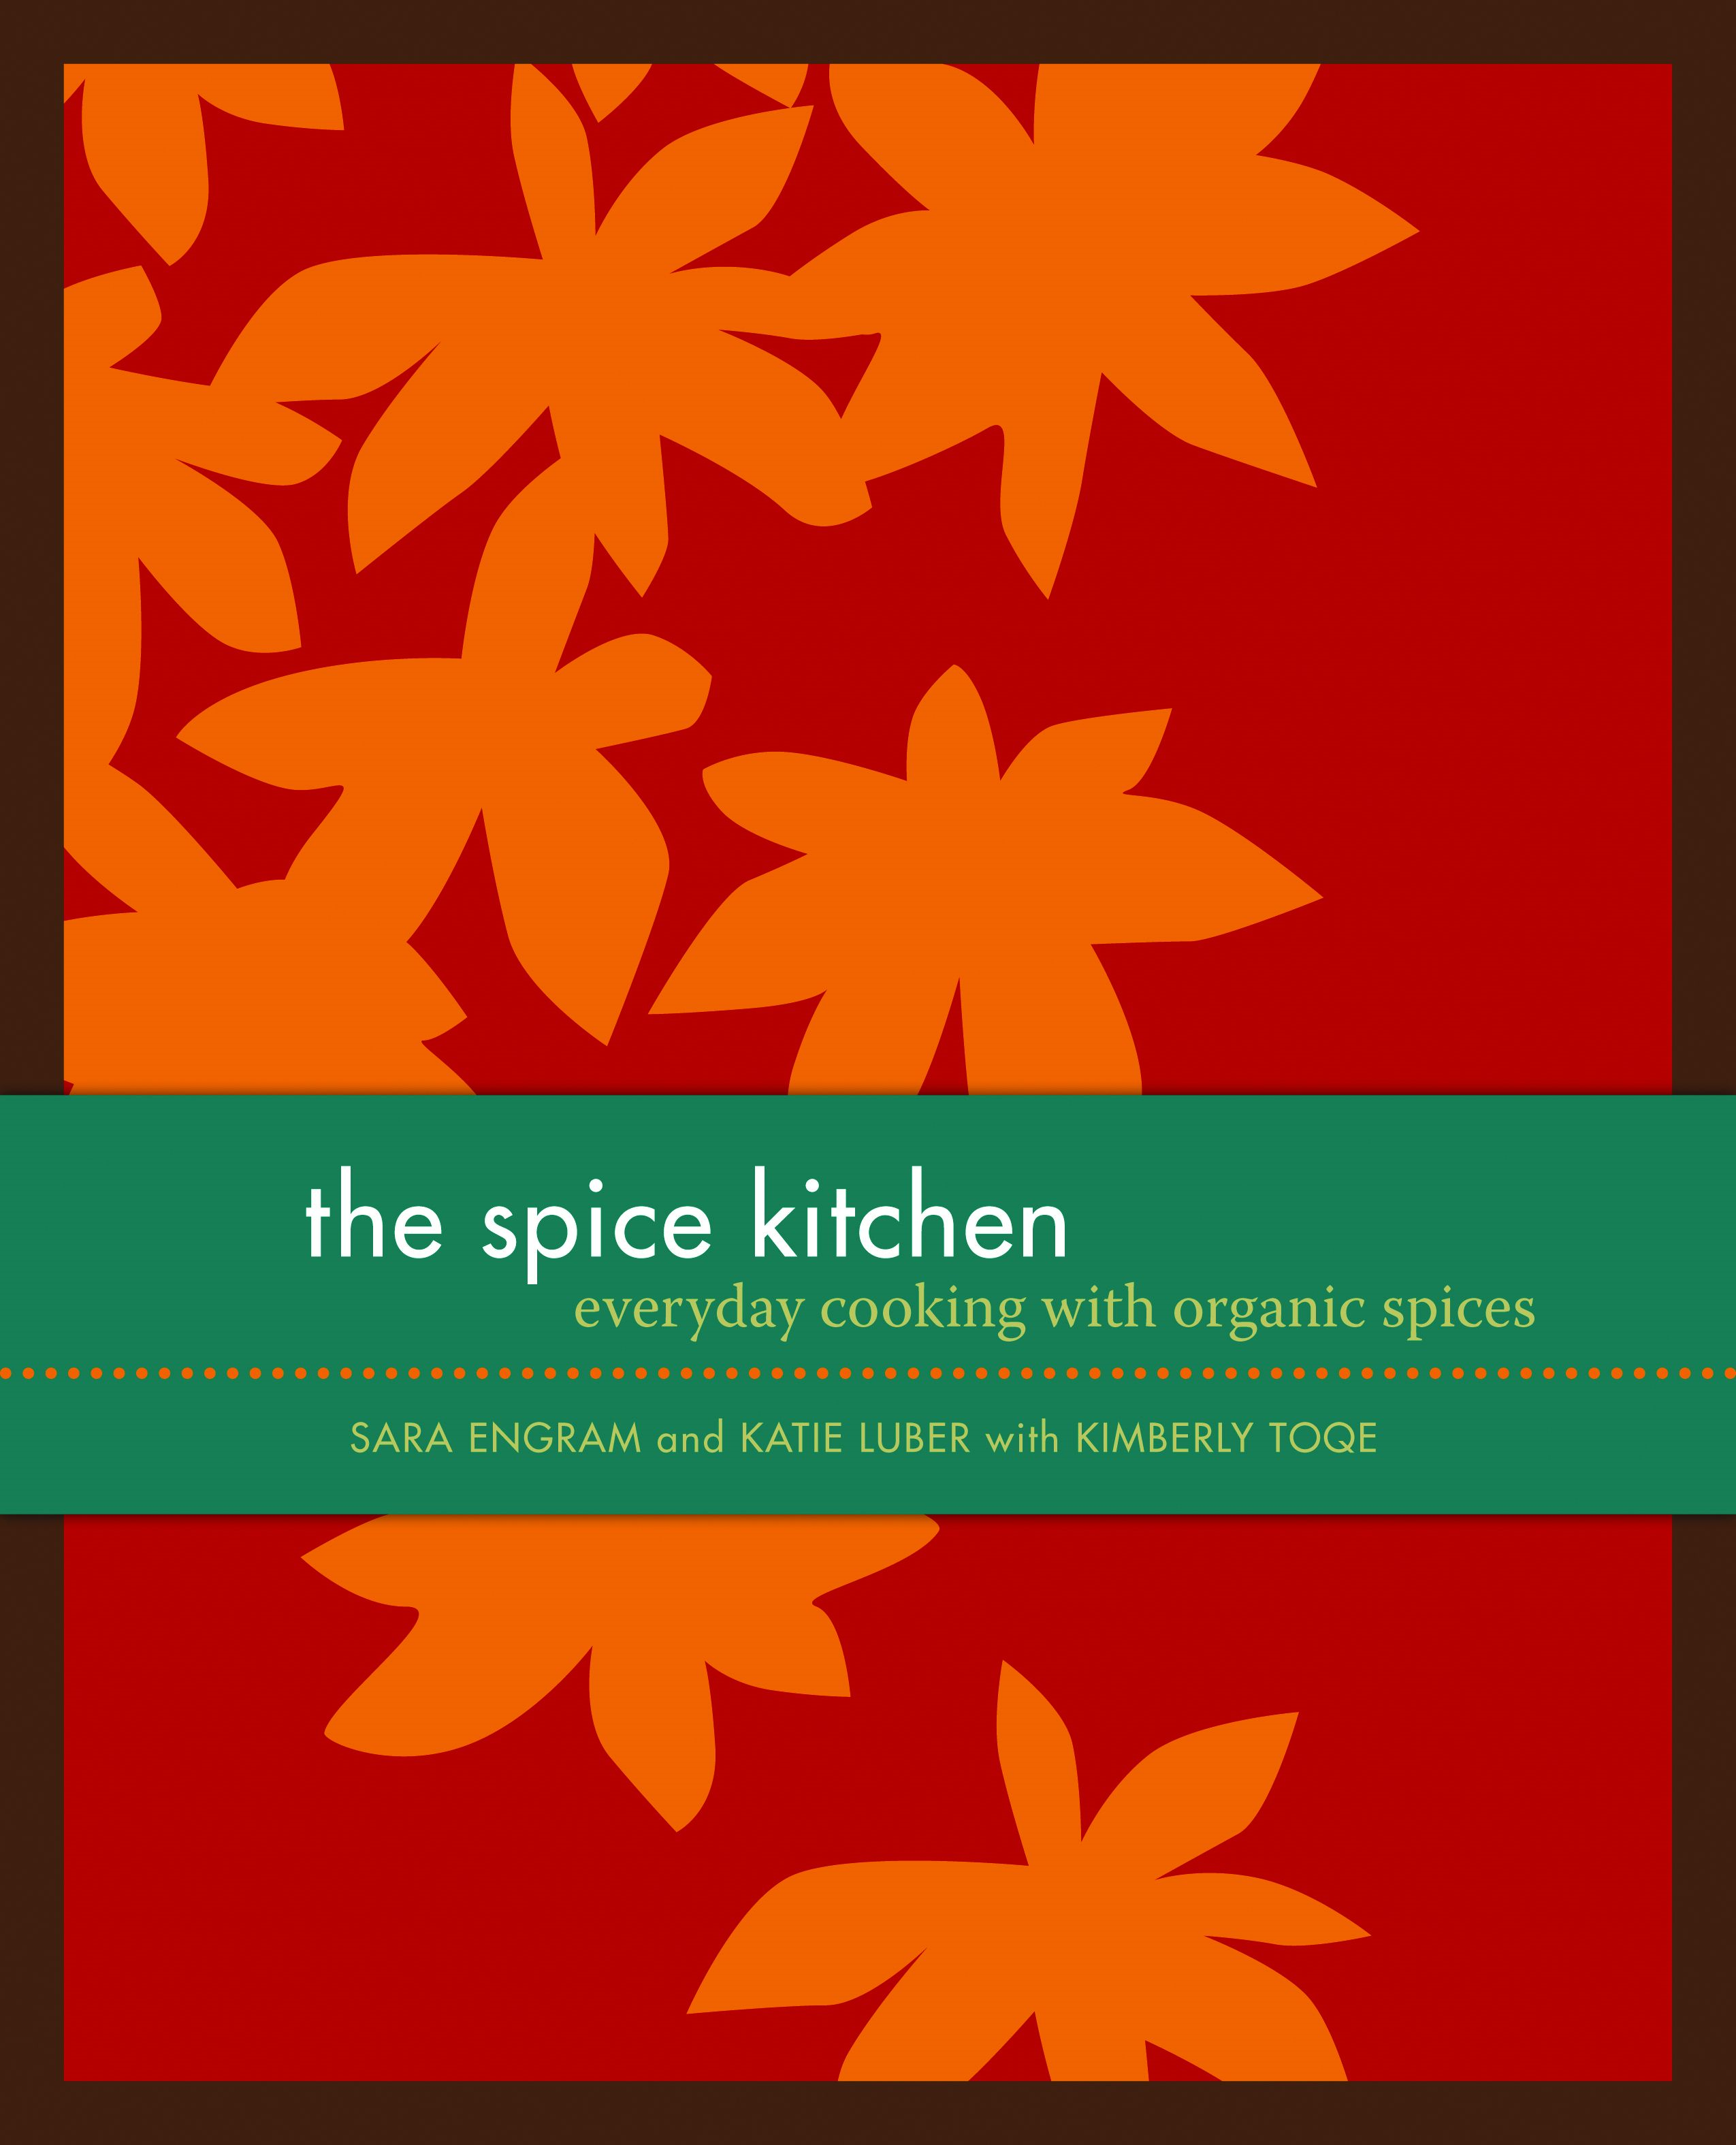 The Spice Kitchen: Everyday Cooking with Organic Spices